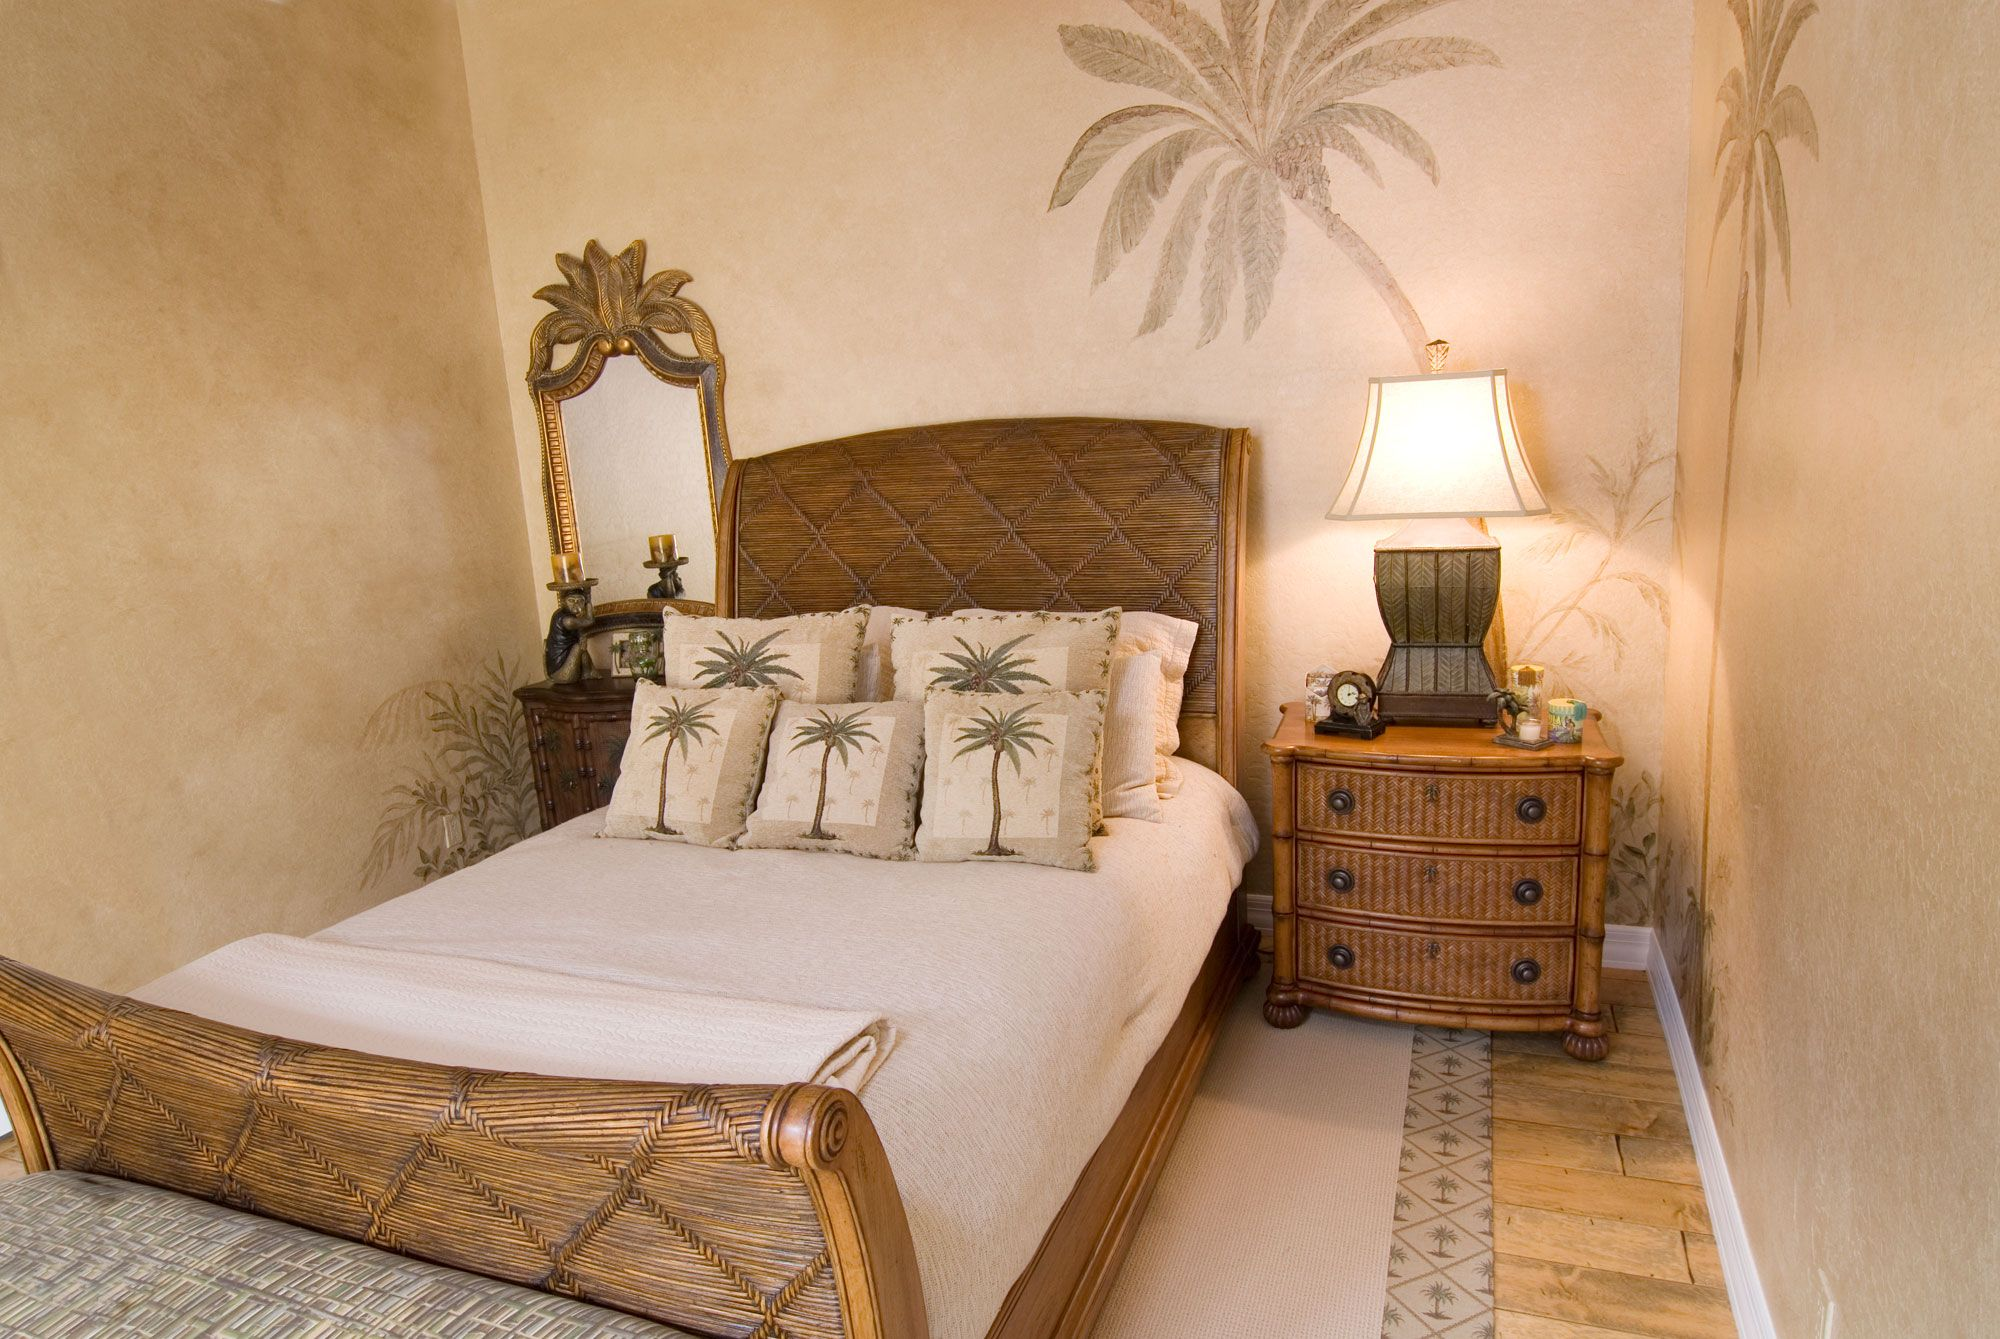 Beach Bedrooms Ideas Ideas Para Decorar Una Casa En La Playa Hogarmania